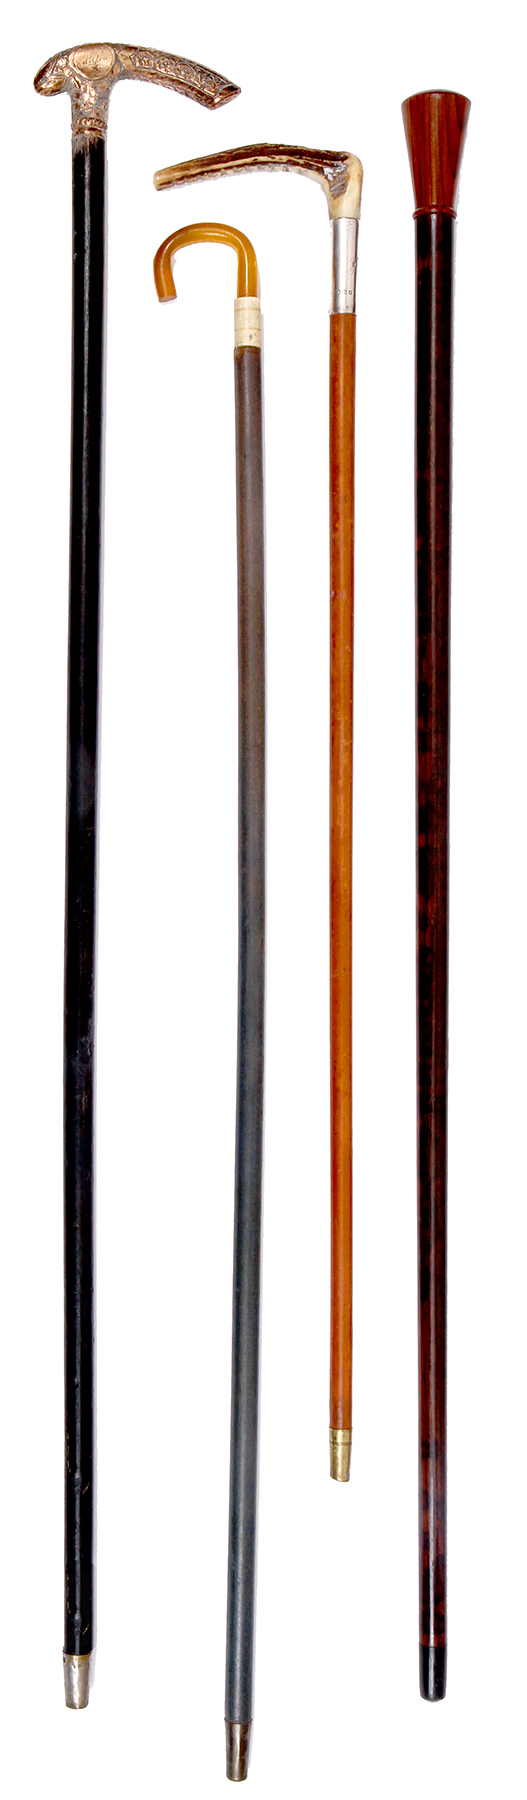 Antique and Quality Modern Cane Auction - 152.jpg